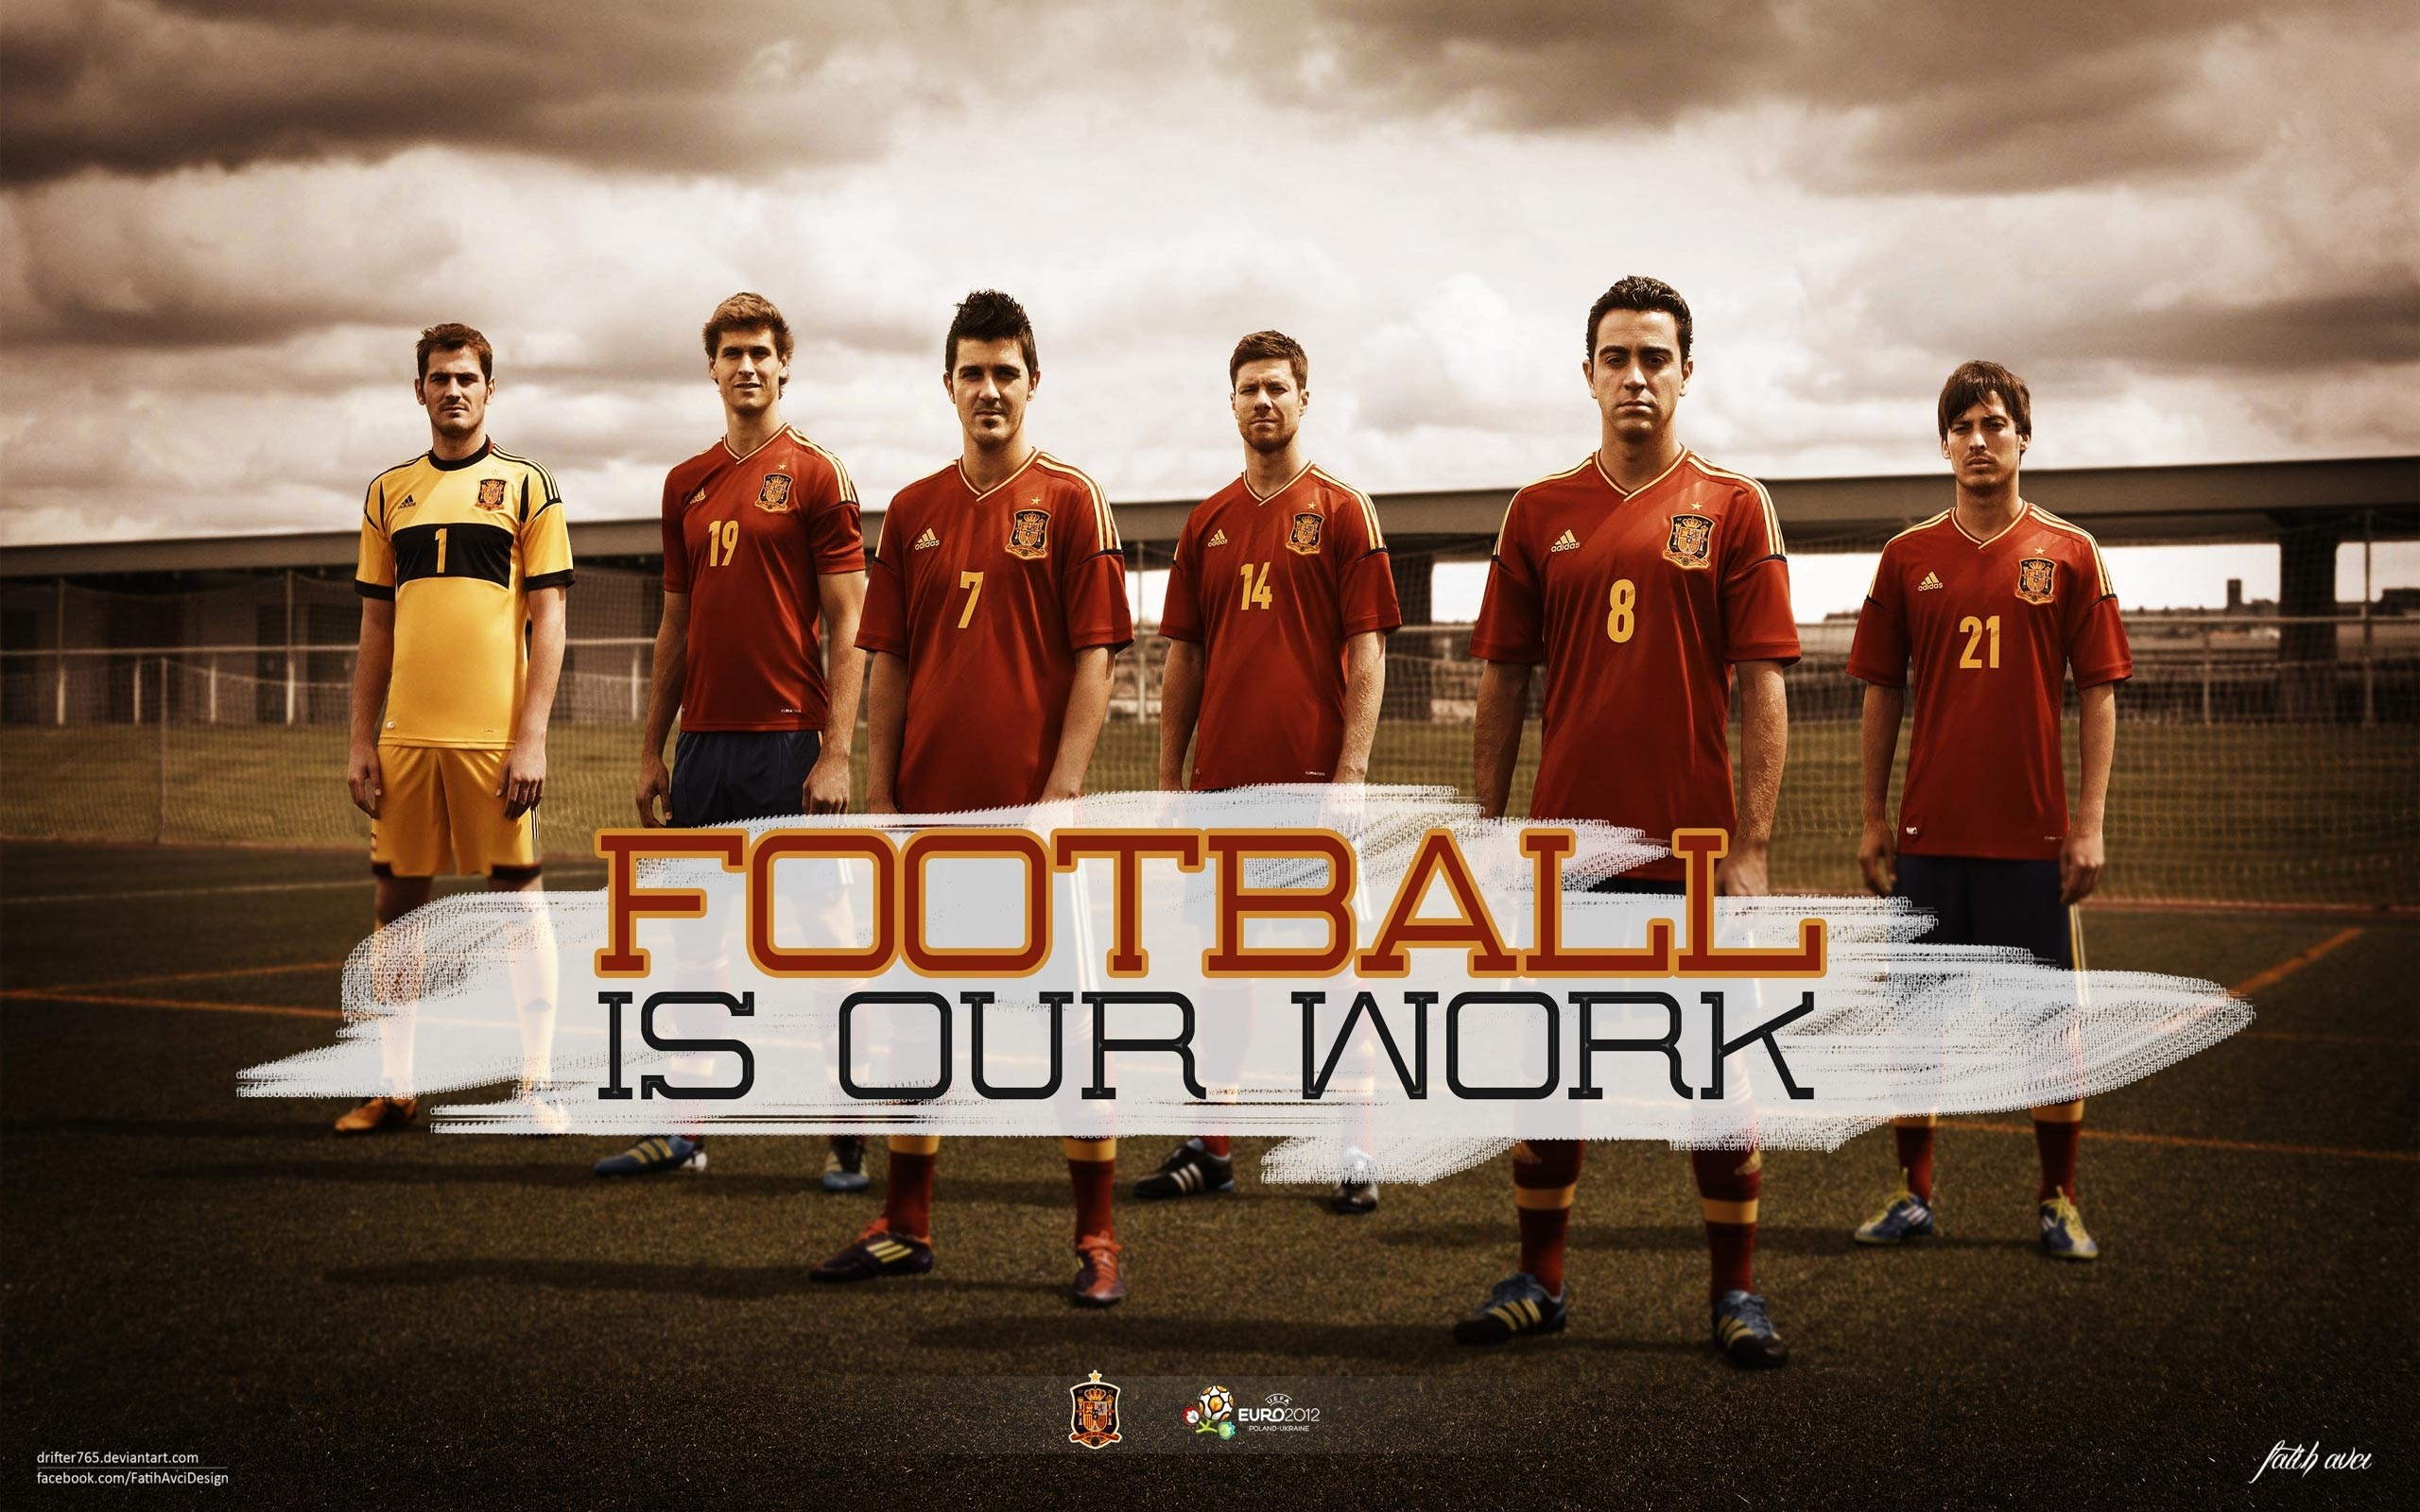 Spain National Team Wallpaper 2018 71 images 2560x1600